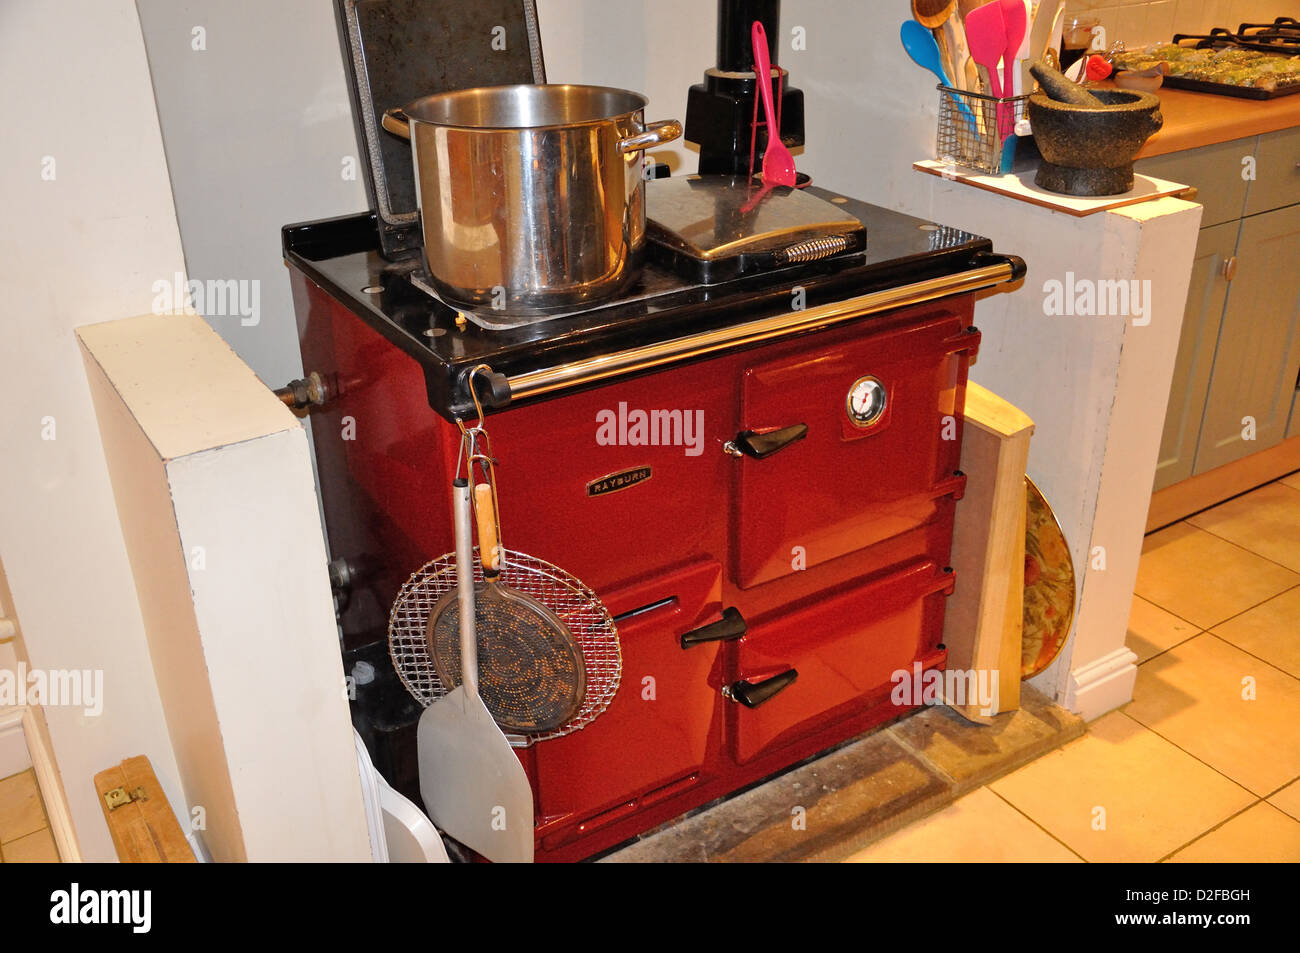 Rayburn cast iron oven in country house kitchen, Sandford on Thames, Oxfordshire, England, United Kingdom - Stock Image